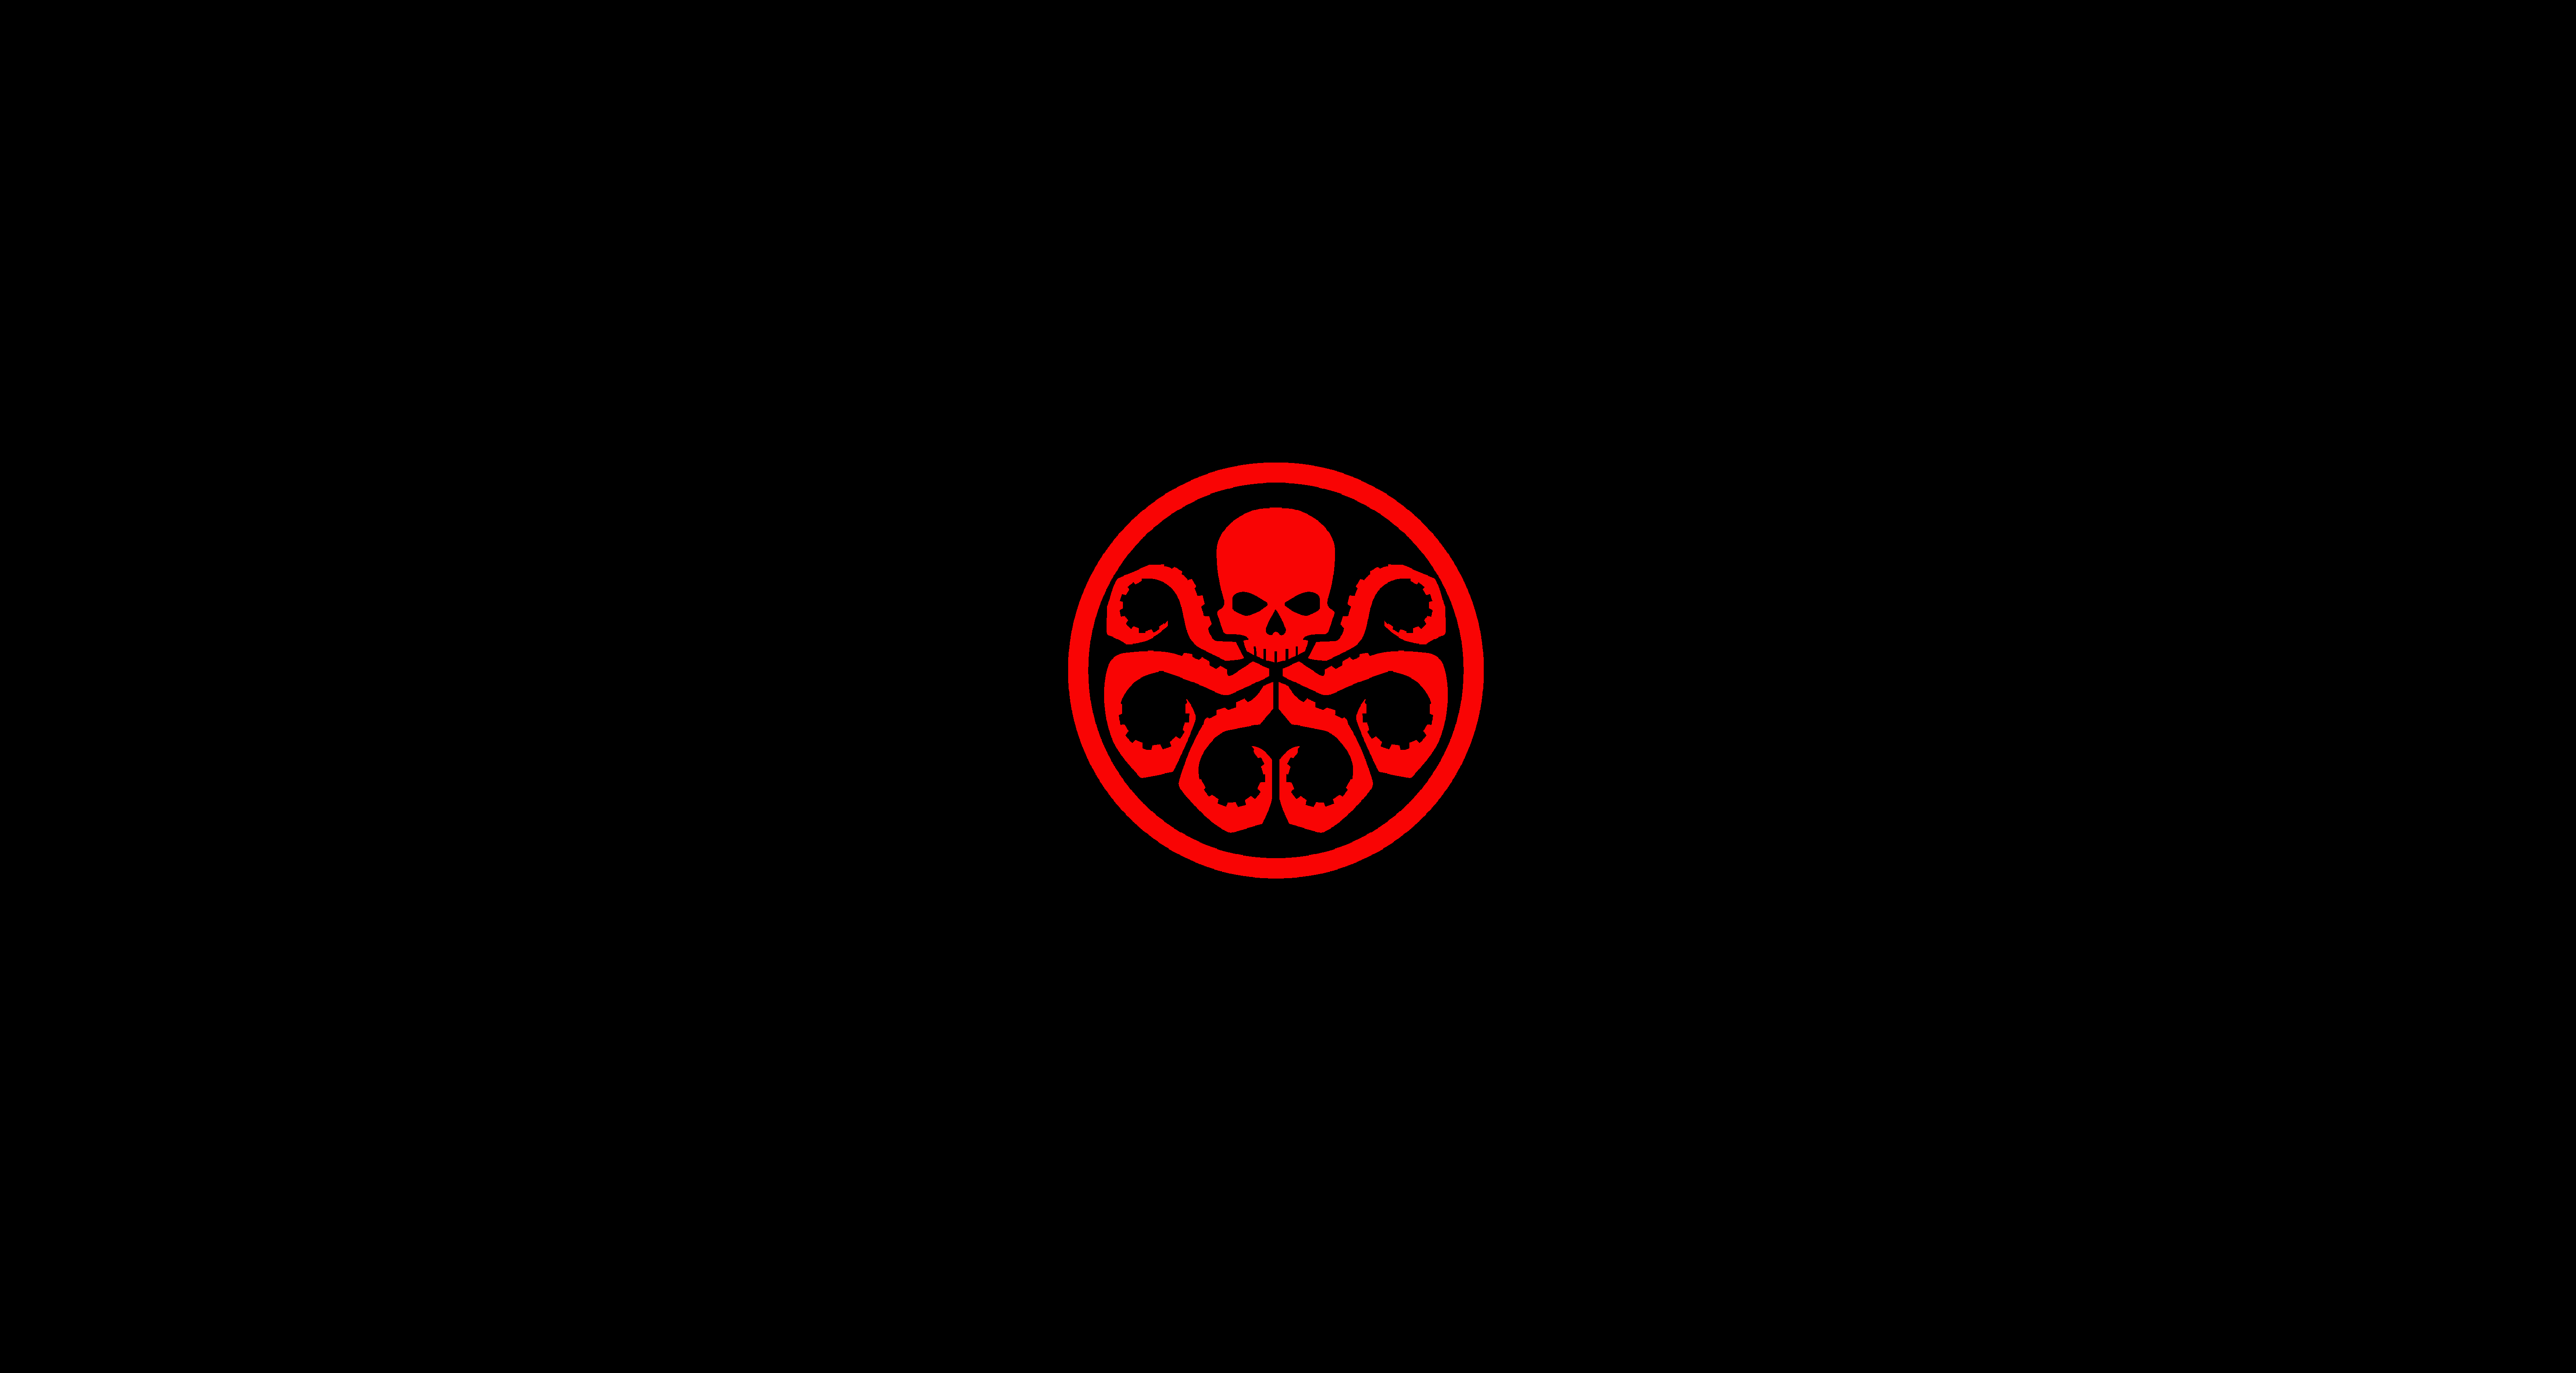 Minimalistic Hydra Marvel Wallpaper I Made After Not Finding One I Liked R Wallpapers Marvel Wallpaper Hydra Marvel Marvel